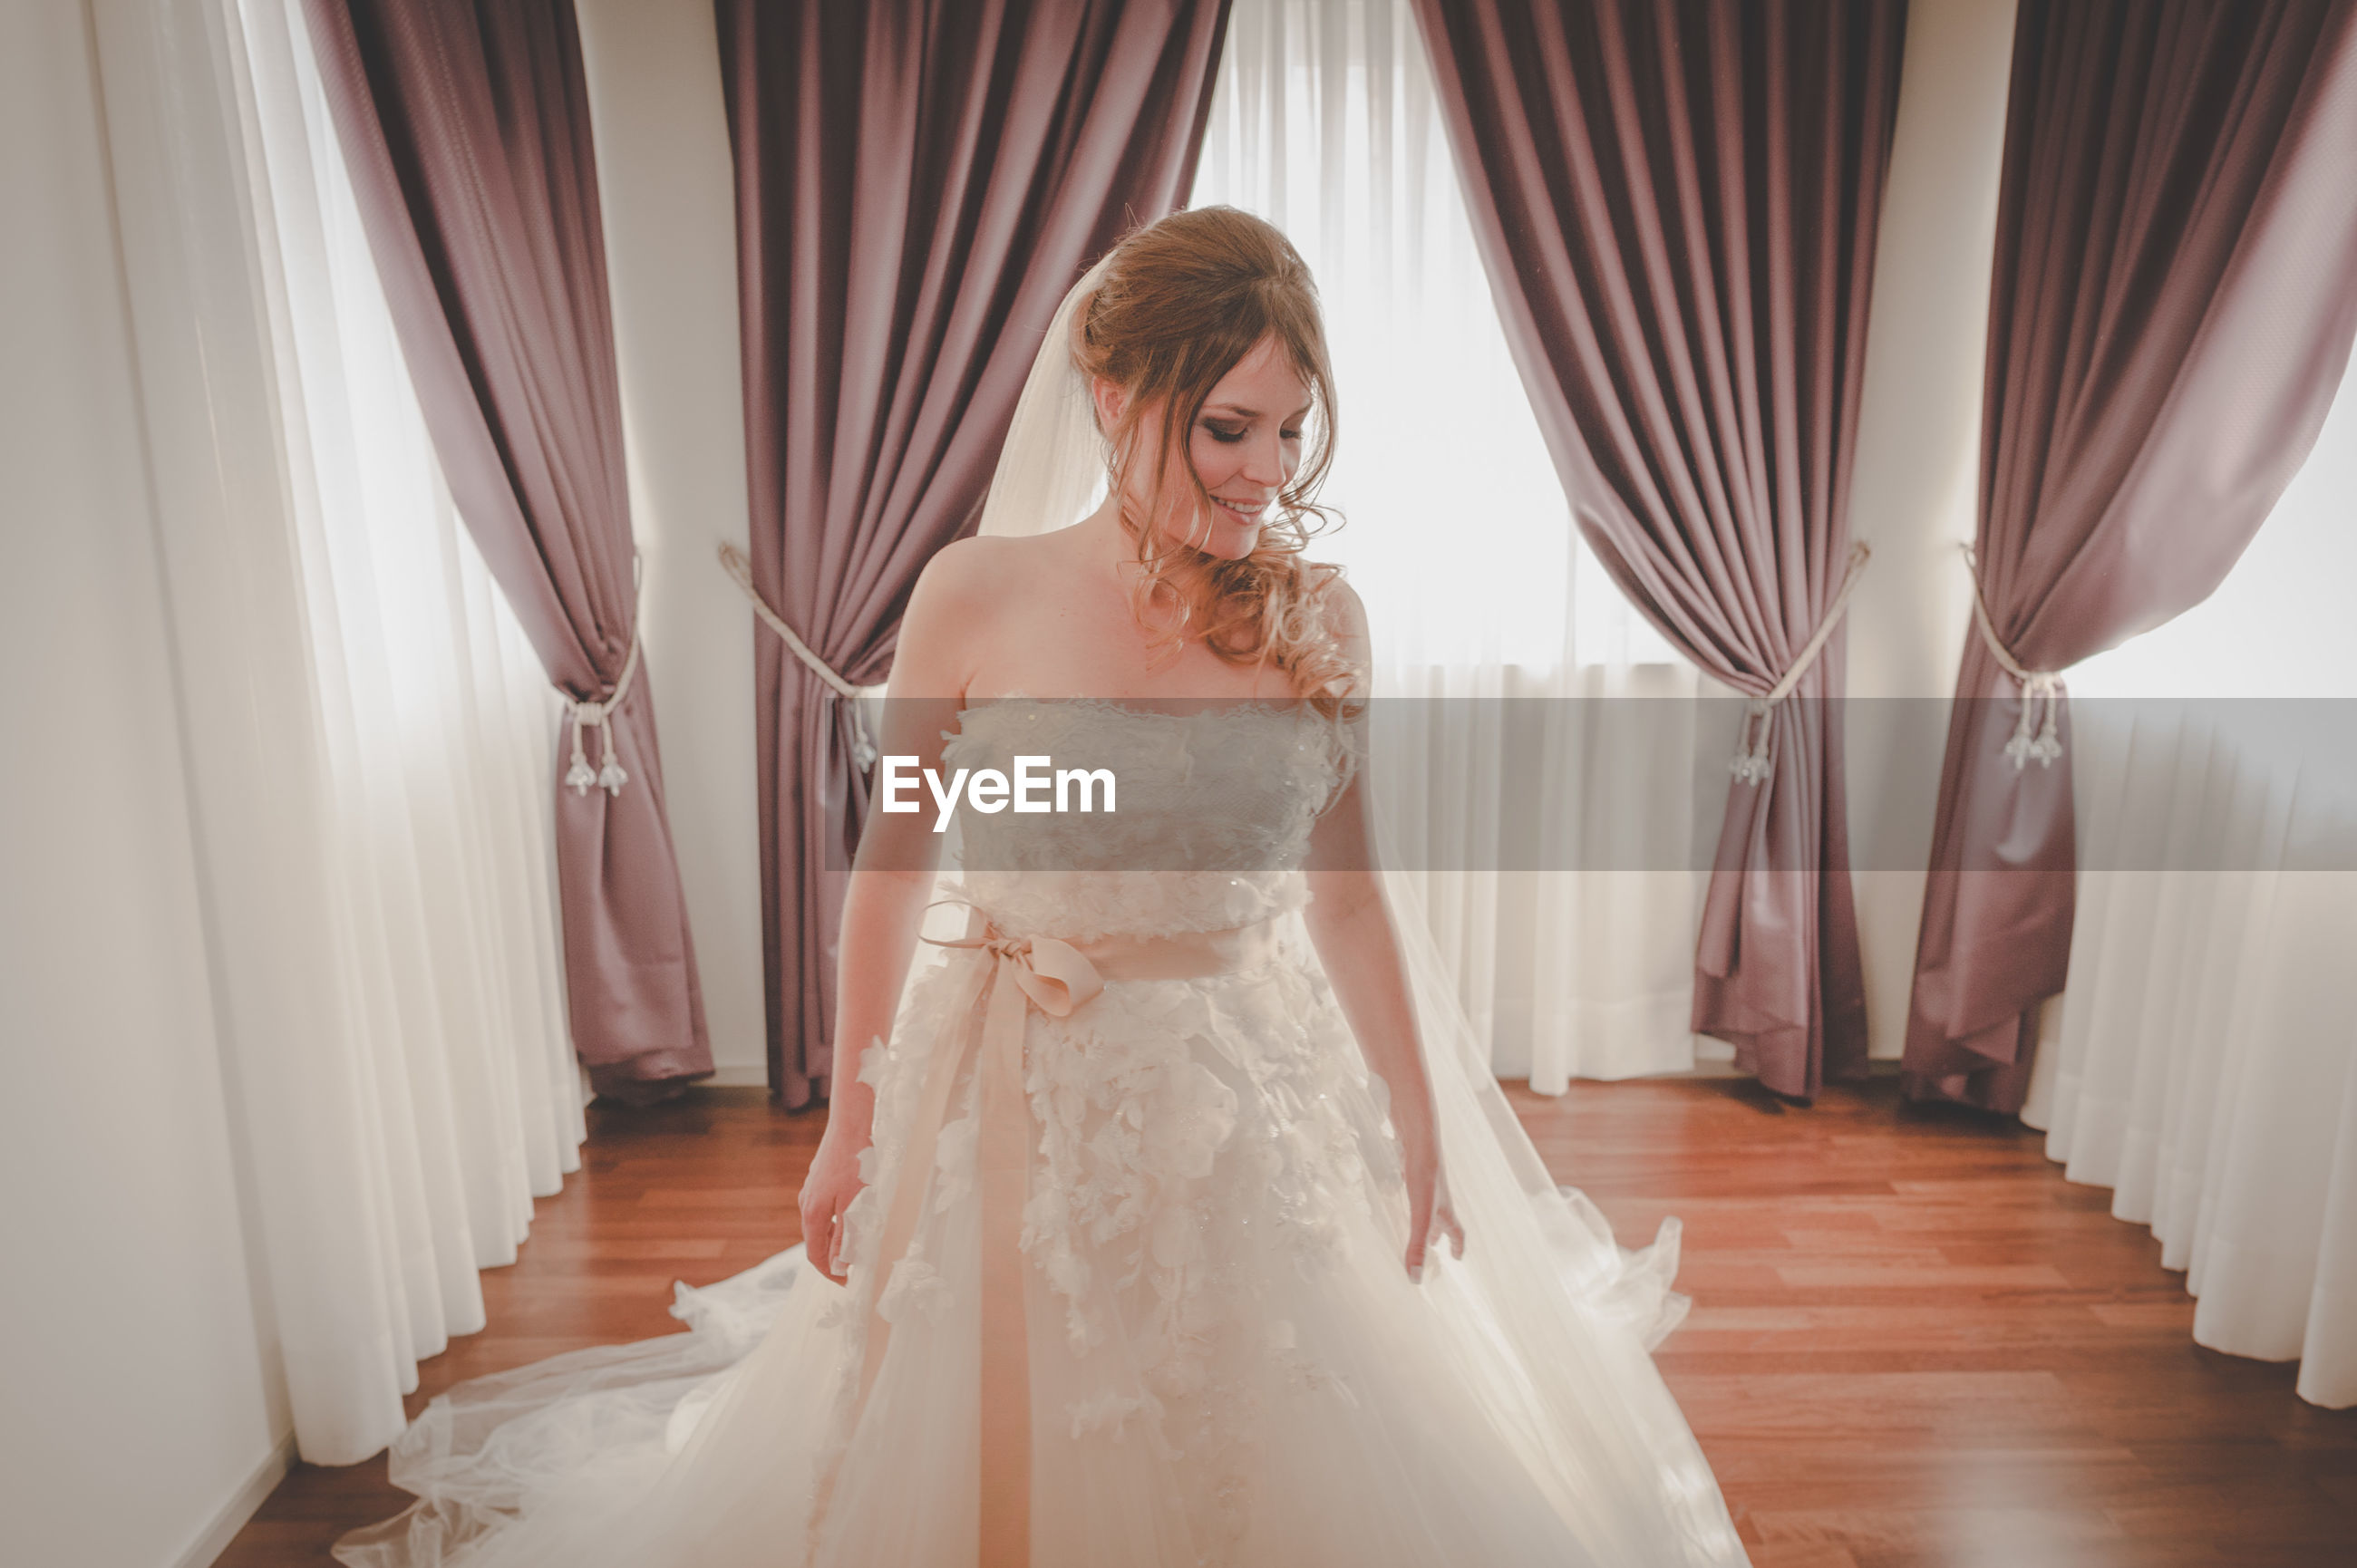 wedding, event, wedding dress, bride, newlywed, celebration, indoors, women, young adult, clothing, life events, front view, fashion, young women, curtain, white color, dress, adult, one person, wedding ceremony, beautiful woman